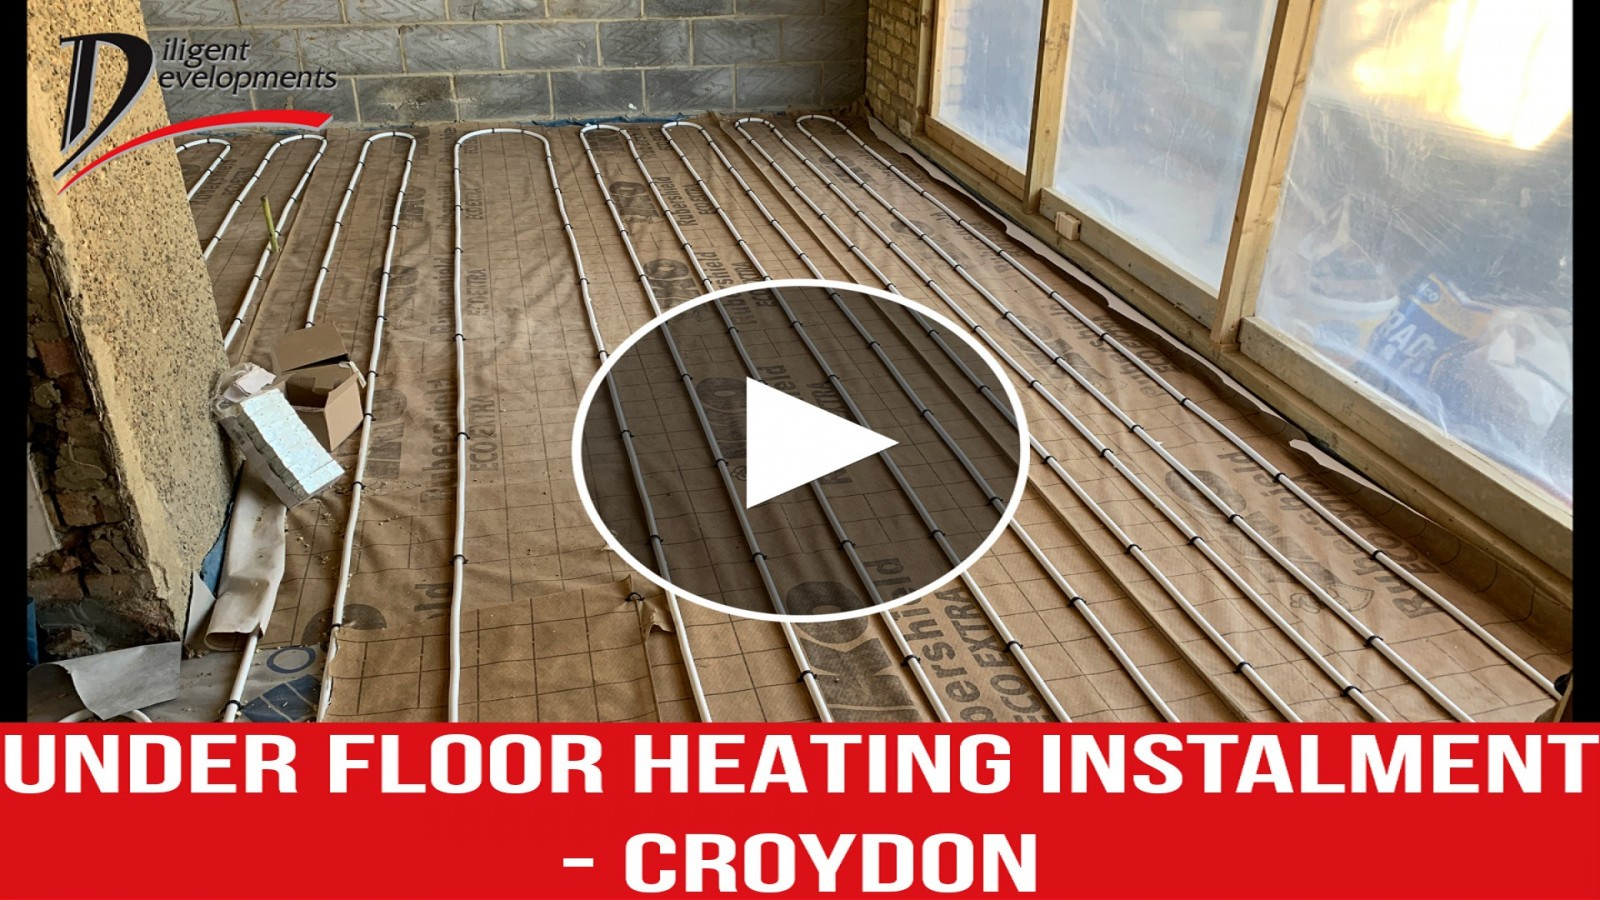 Underfloor Heating Installation - Croydon Thornton Heath